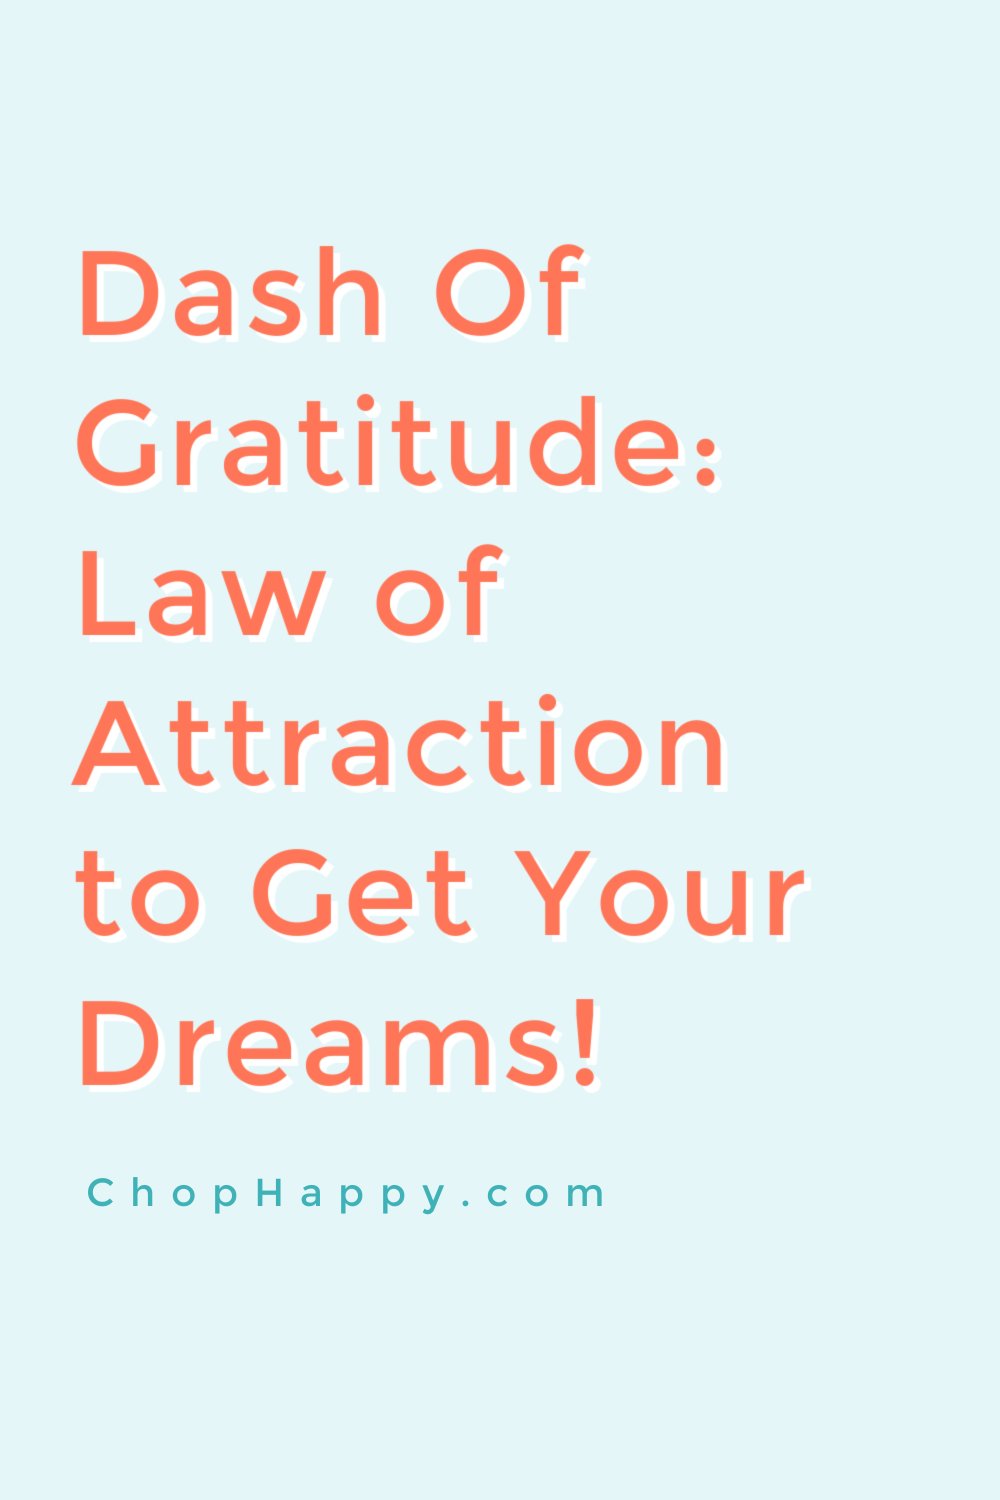 Dash of Gratitude: Law of Attraction. Using the attitude of gratitude to dream big and the power of now will get you dreams come true. Happy Today! www.ChopHappy.com #lawofattraction #grateful